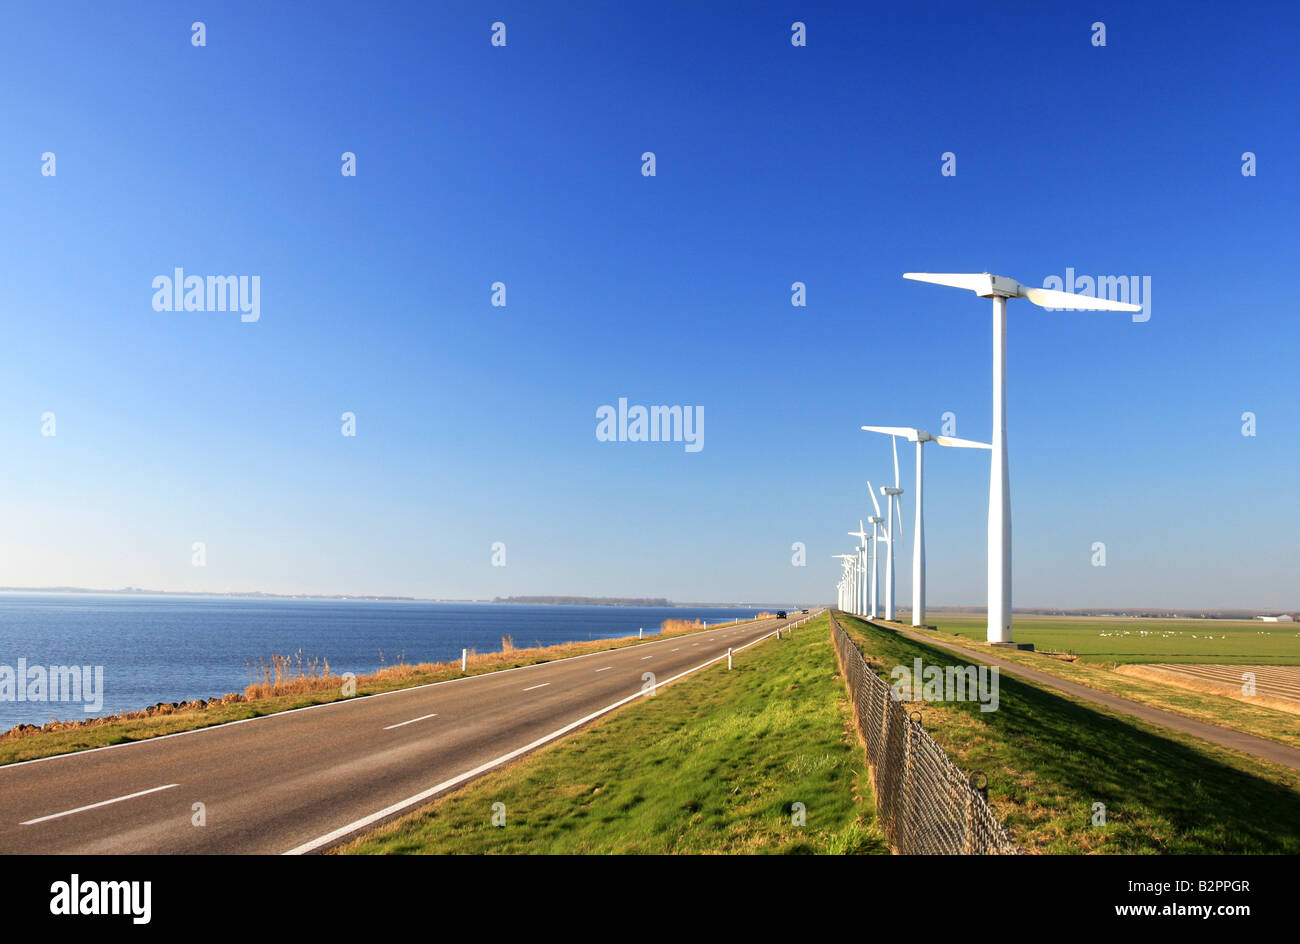 Two Bladed Windmill Farm in the Netherlands with Road - Stock Image